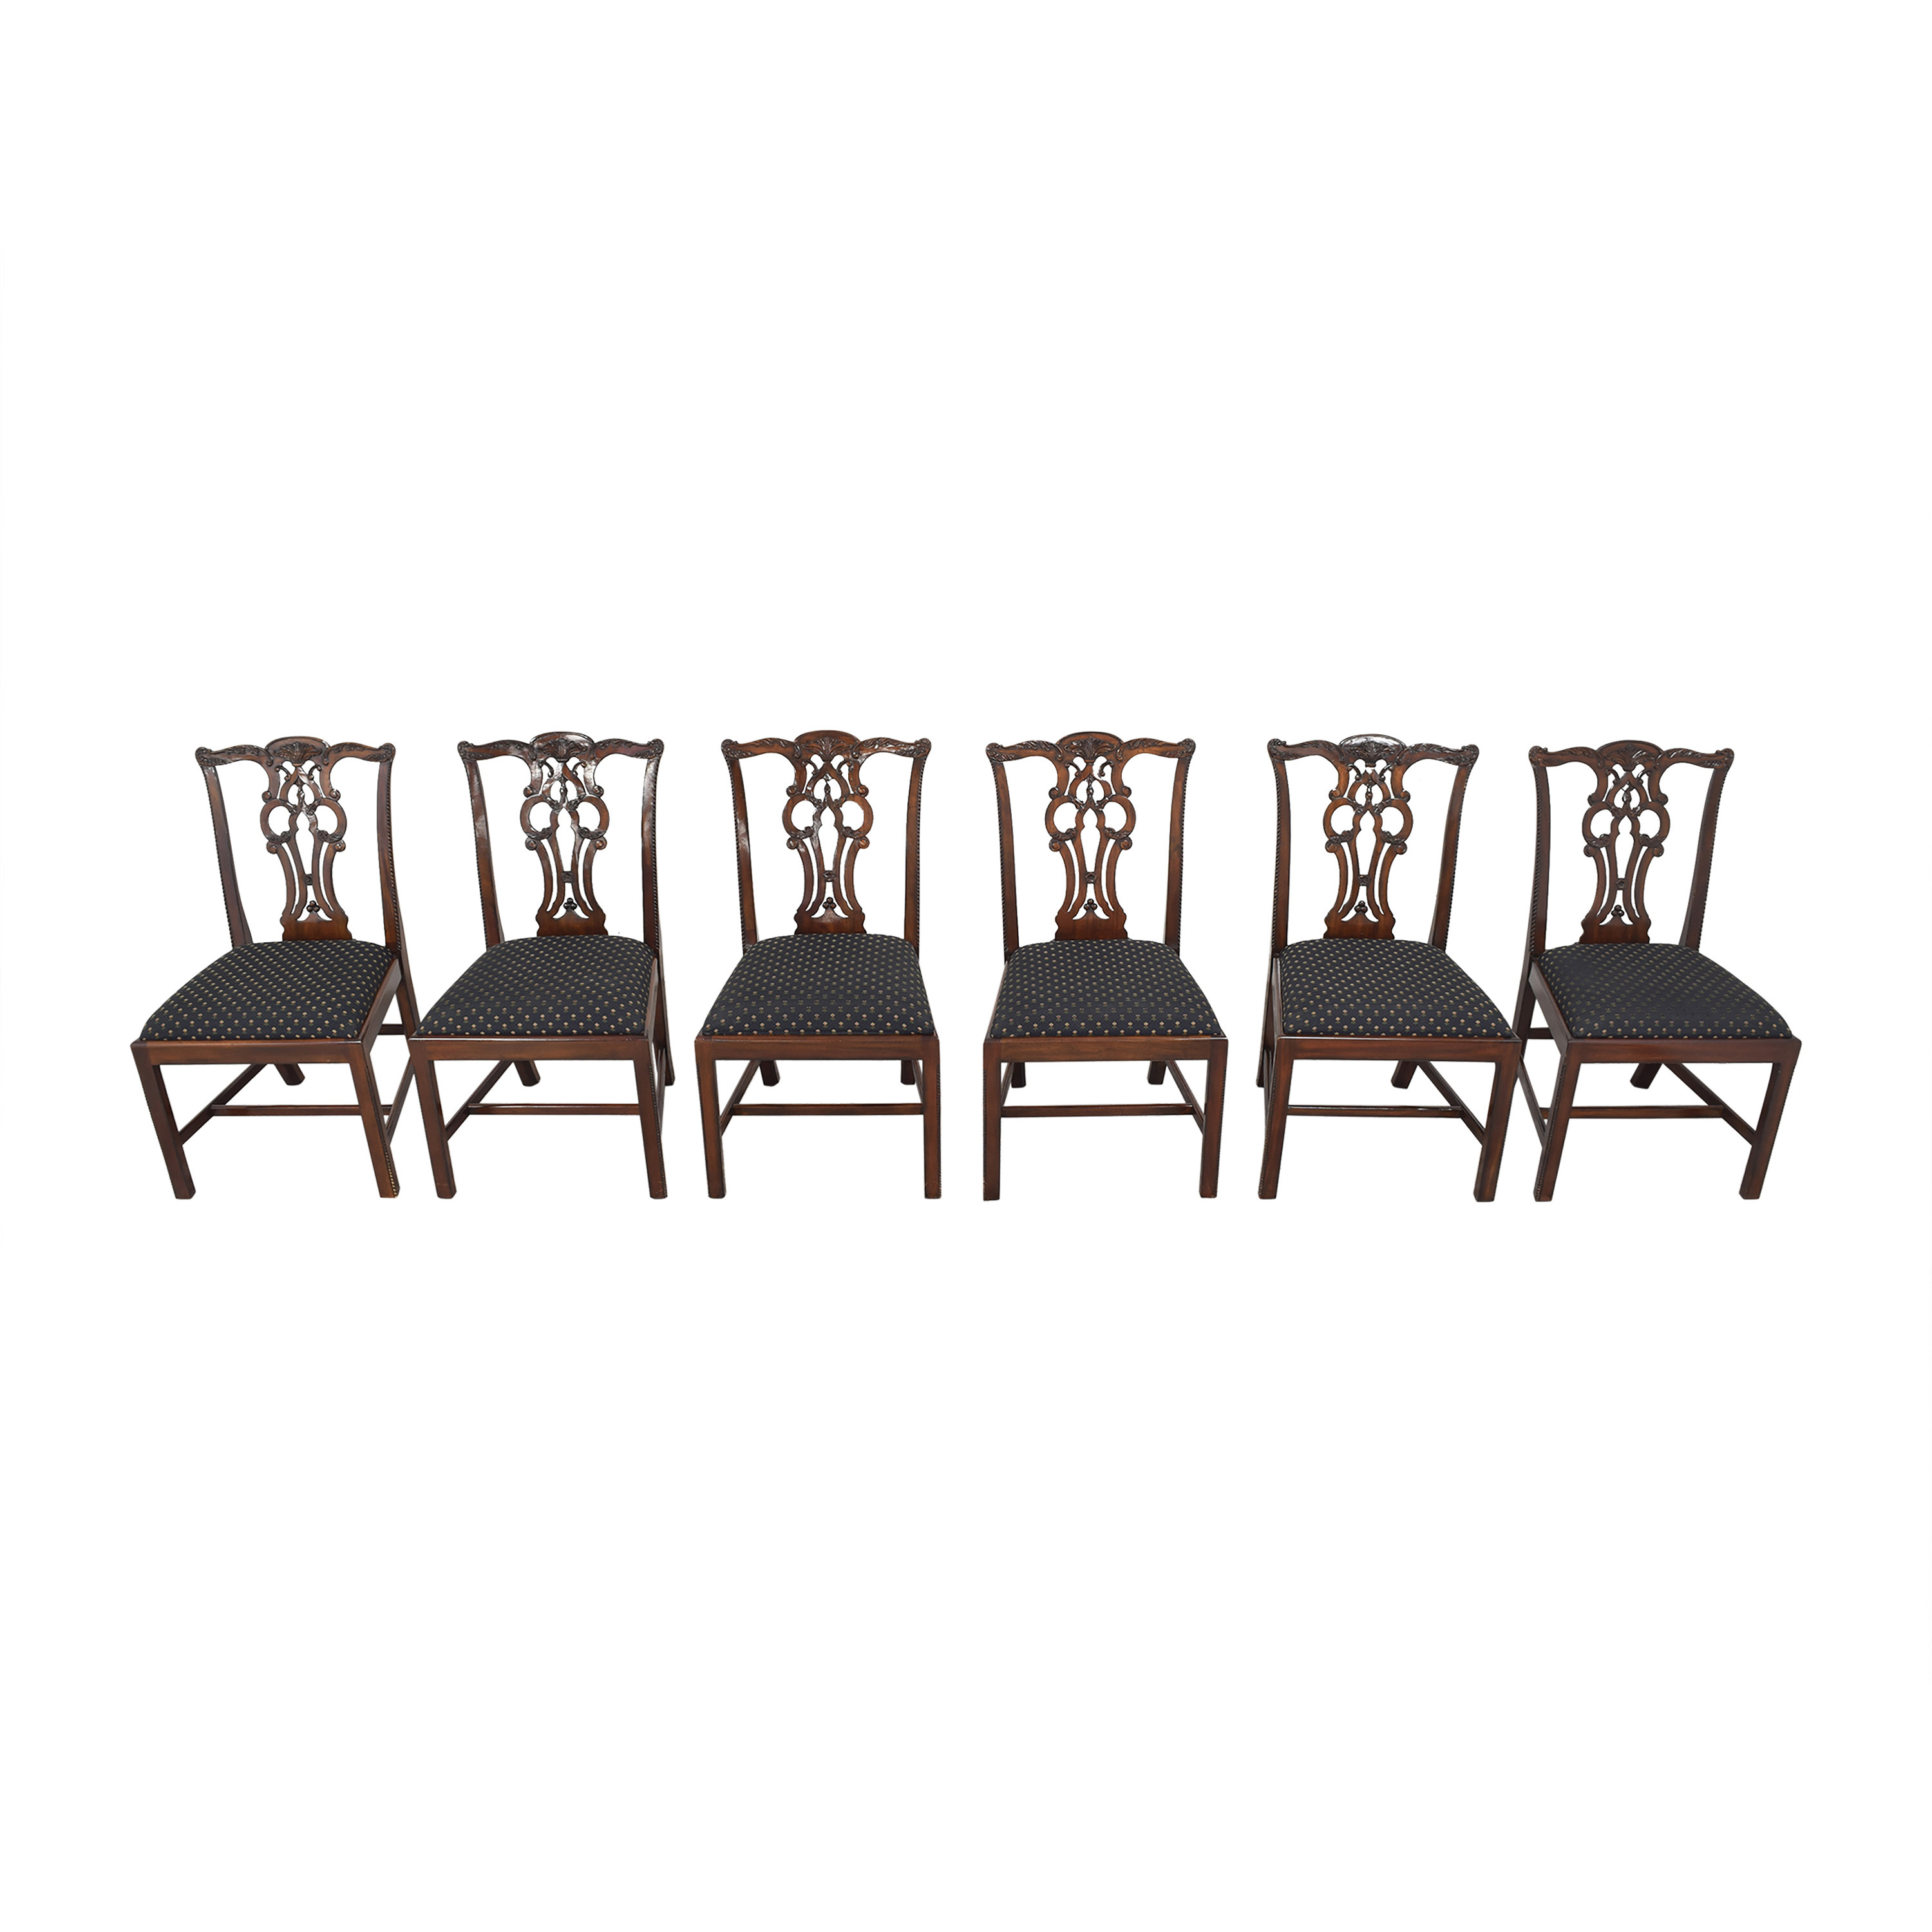 Maitland-Smith Maitland-Smith Chippendale Dining Chairs price